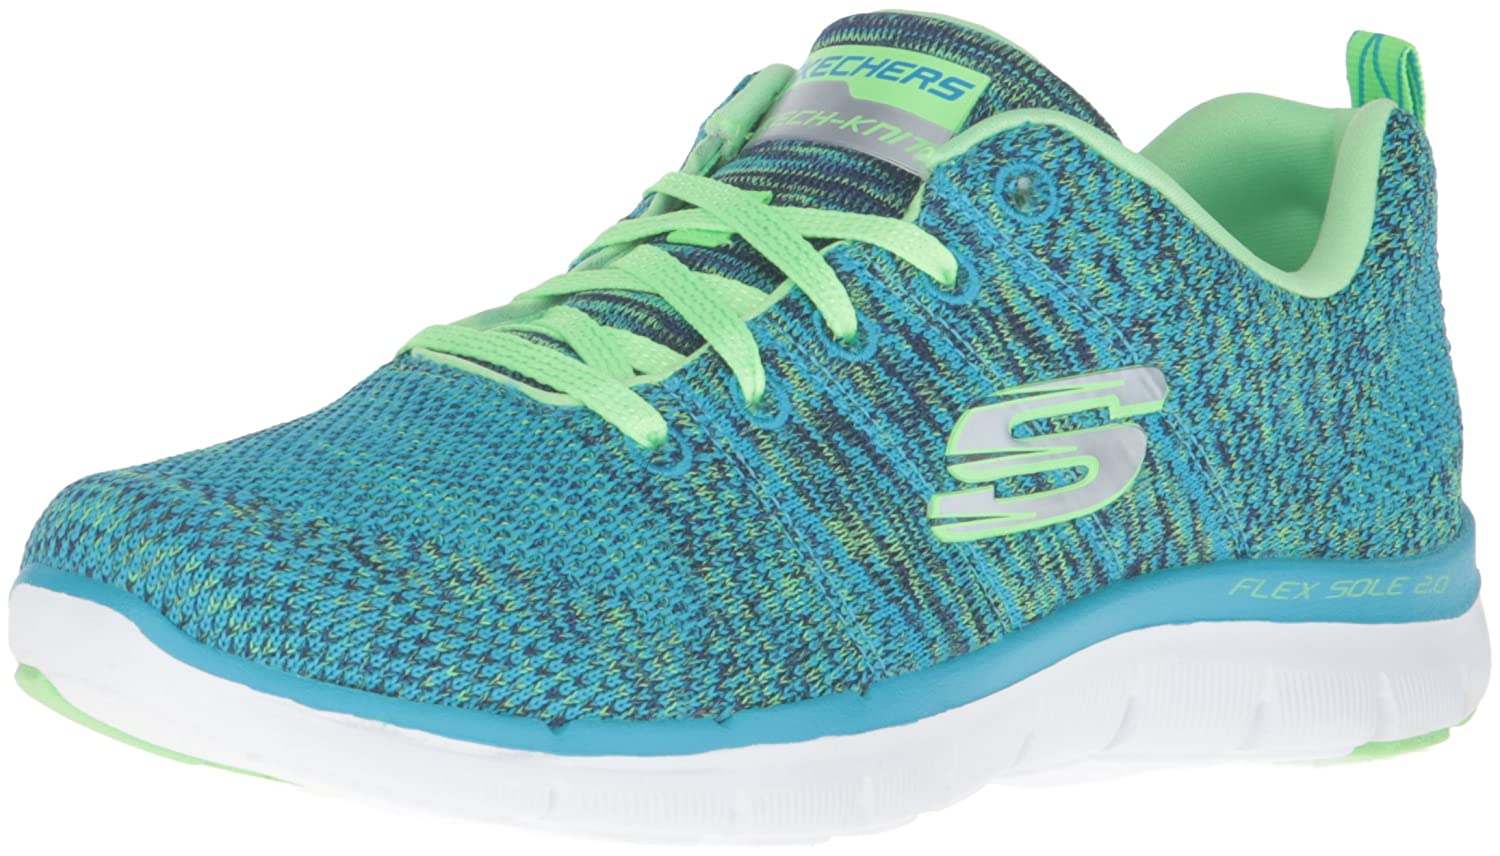 Bleu (Bllm Bleu Lime) Skechers Flex Appeal 2 High Energy, paniers Basses Femme